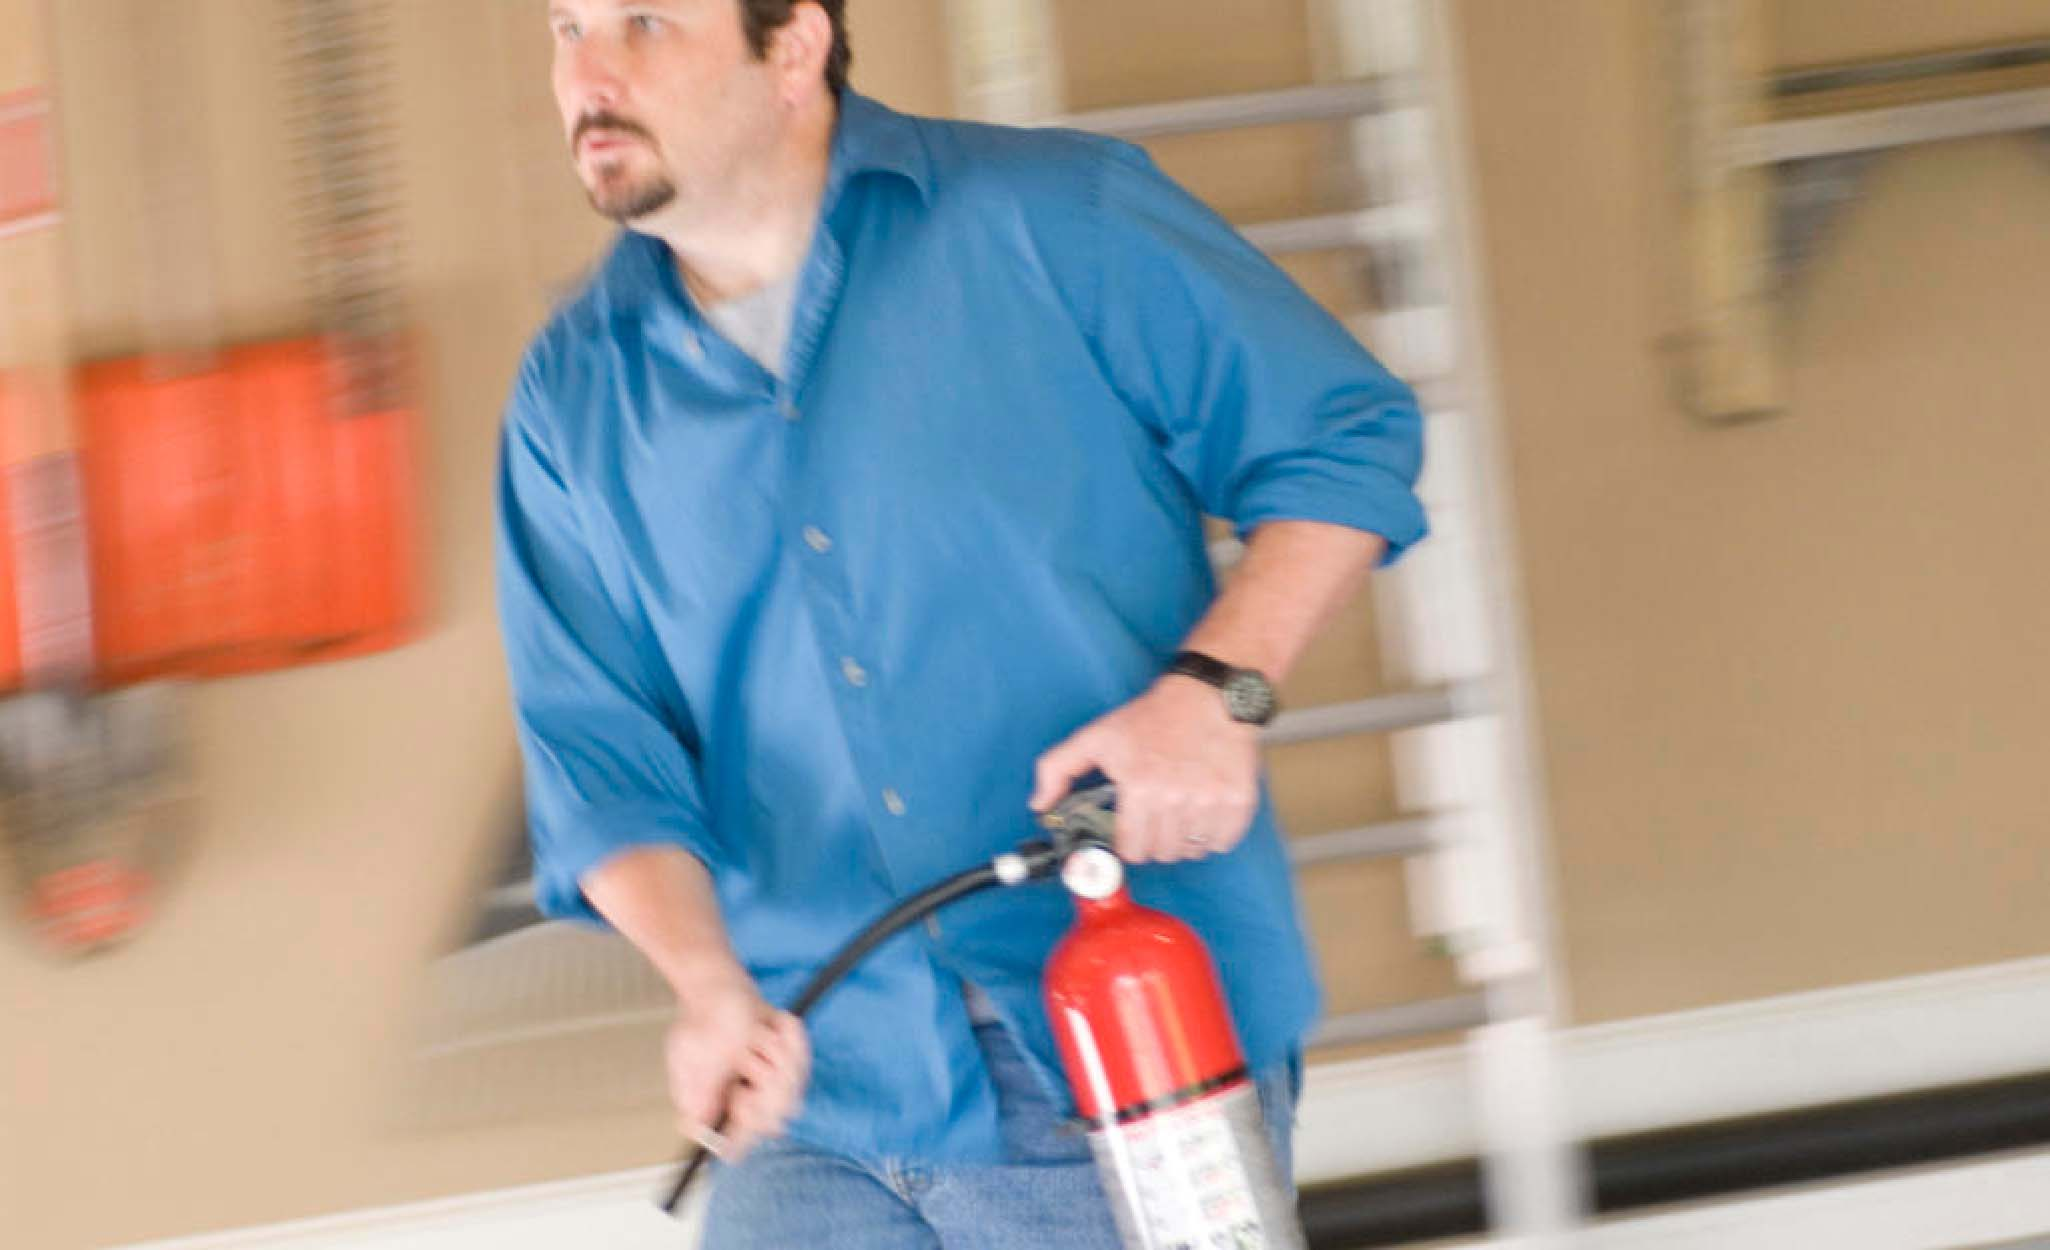 A man prepares to use a fire extinguisher.